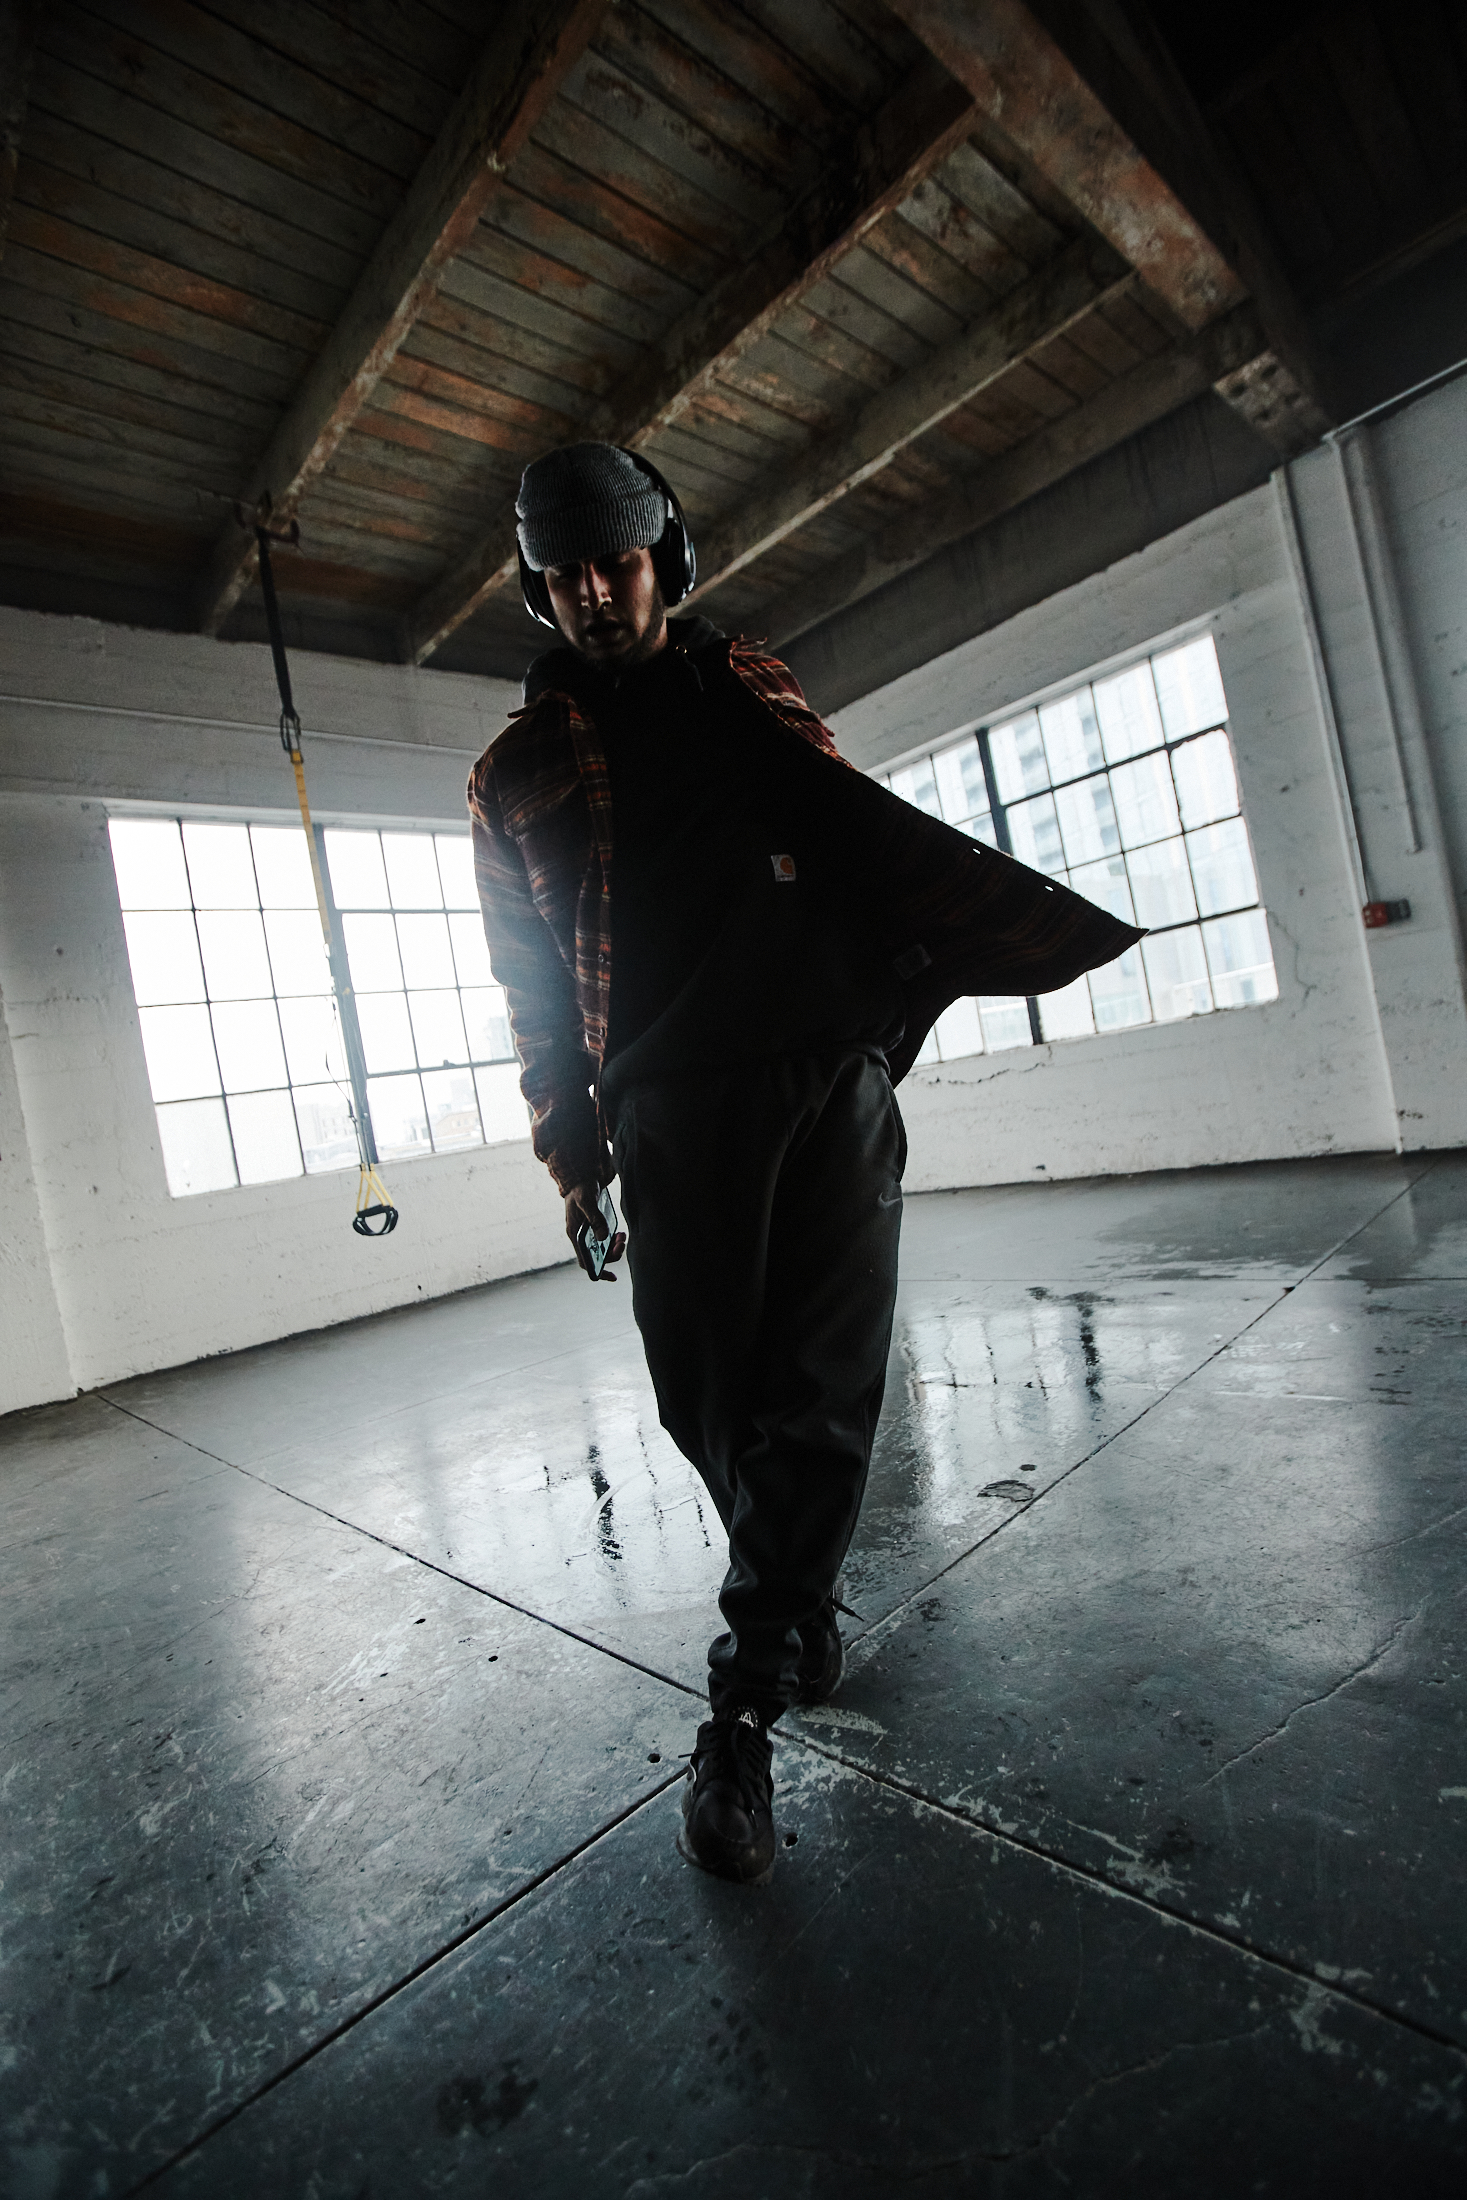 TJ Yale, wearing a beanie, flannel shirt, pants, and sneakers, performs a dance move in an industrial space with windows behind him.